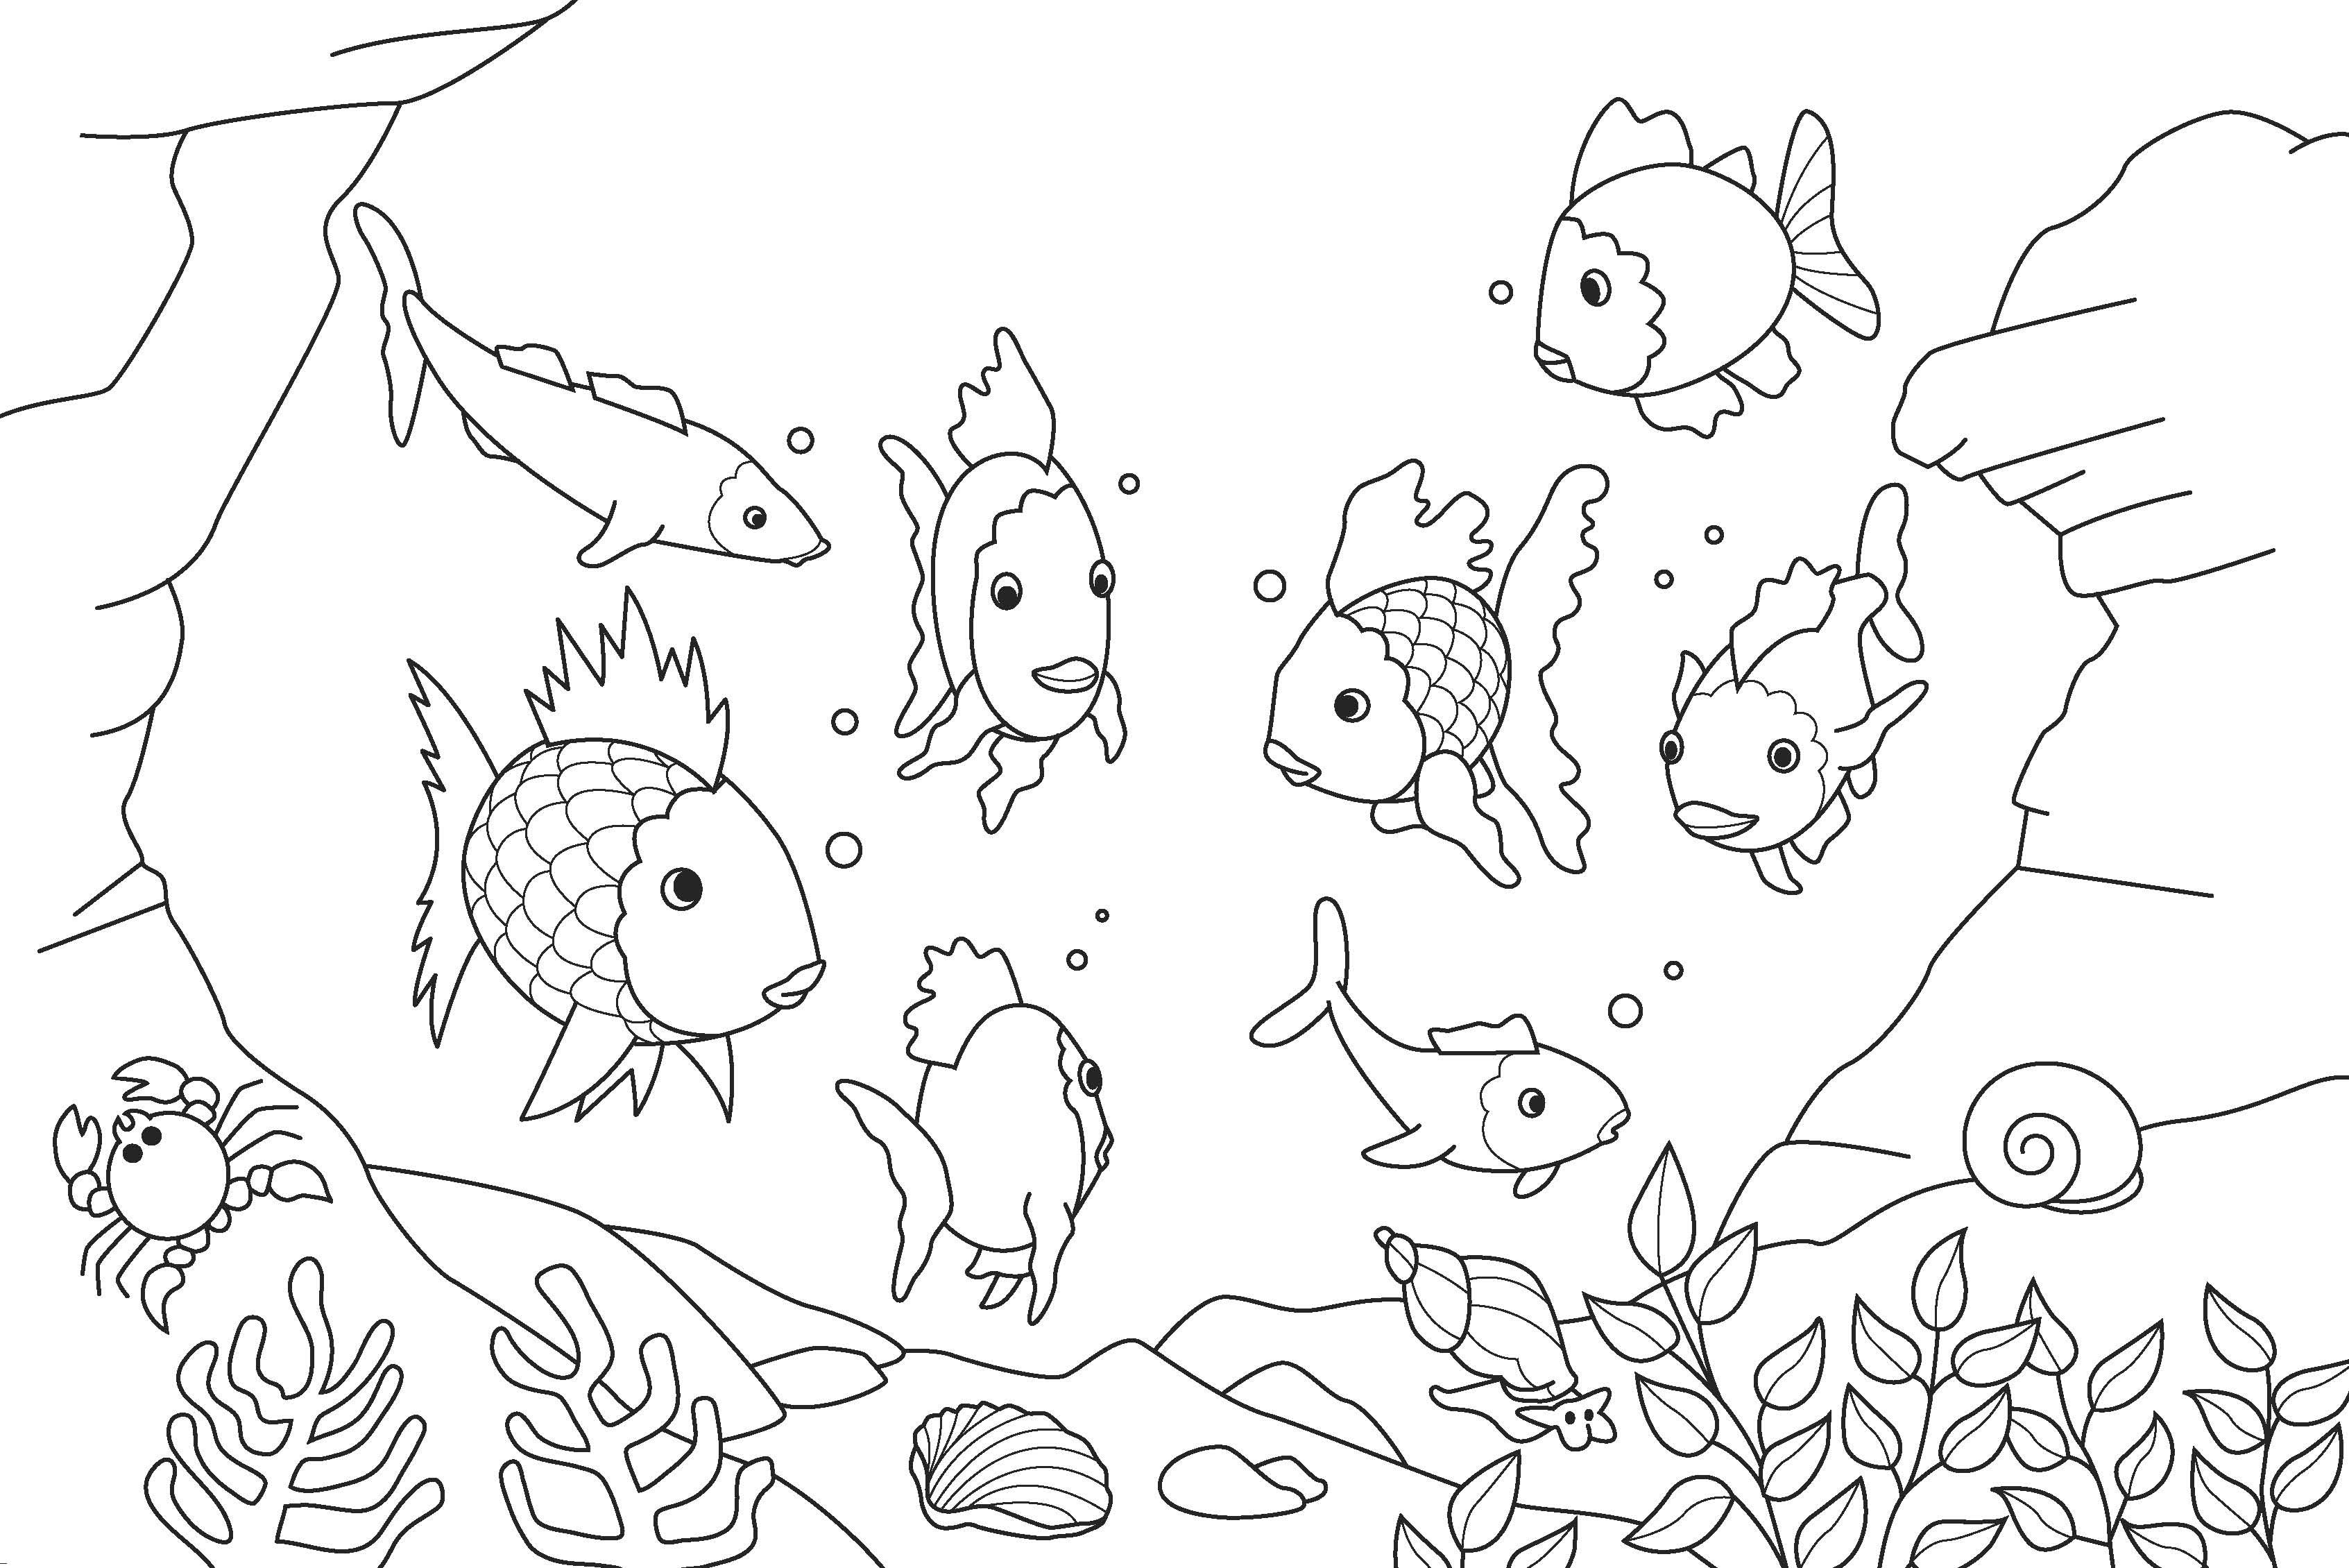 http://www.coloringpage.tk/ocean-coloring-pages.html